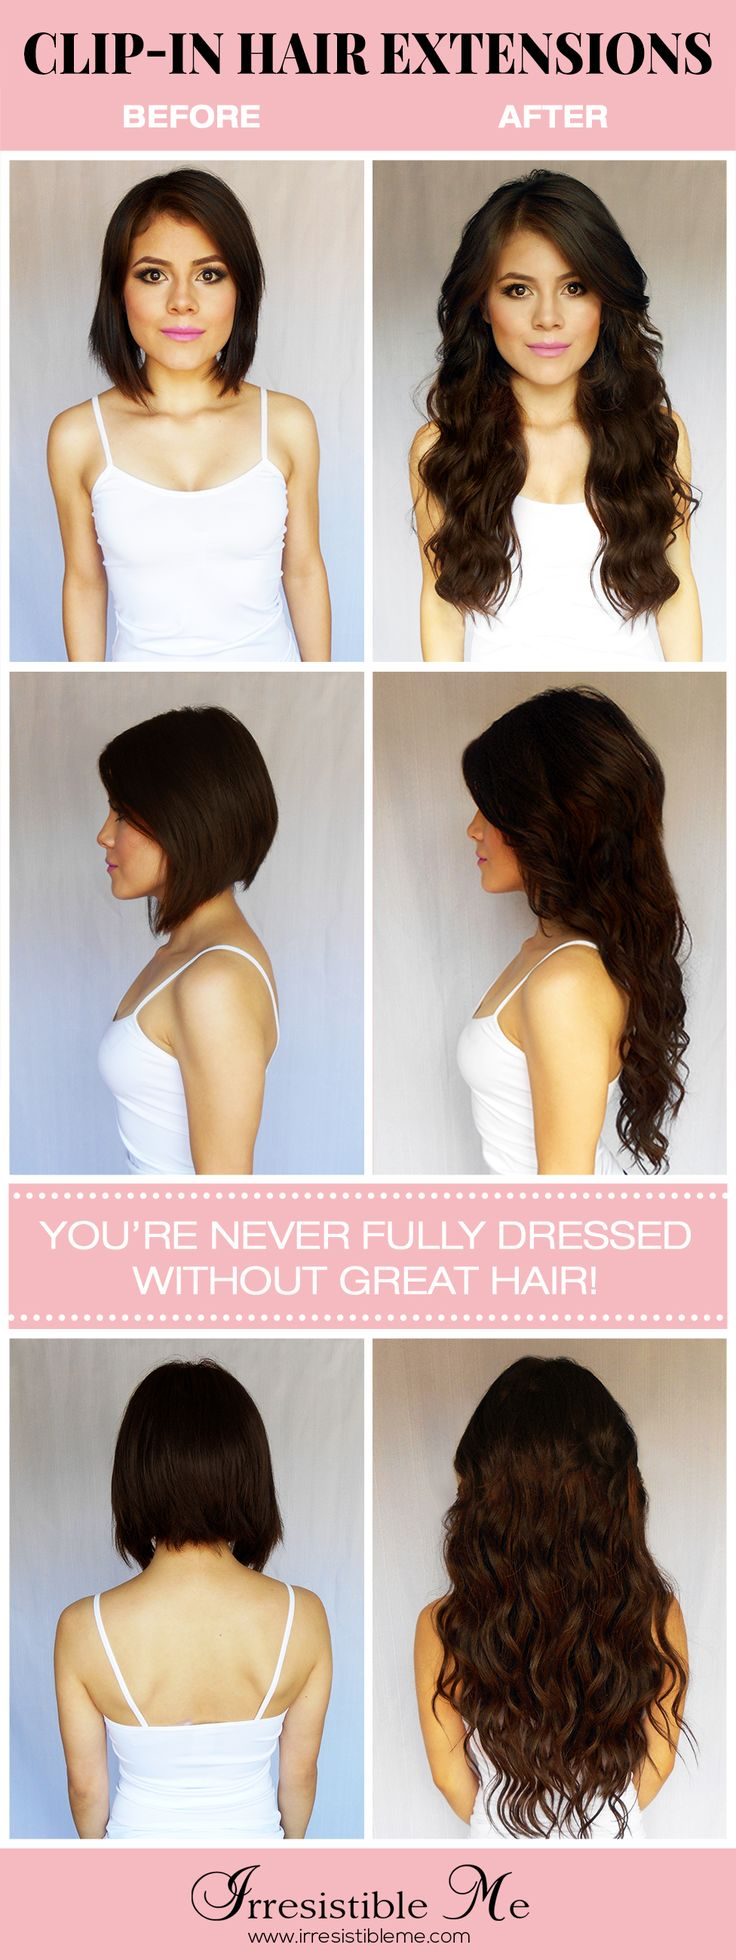 Best 25 clip in hair extensions ideas on pinterest how hair get long hair in less than 5 minutes with irresistible me human remy clip in hair extensions the before and after change is totally awesome and nobody will pmusecretfo Image collections